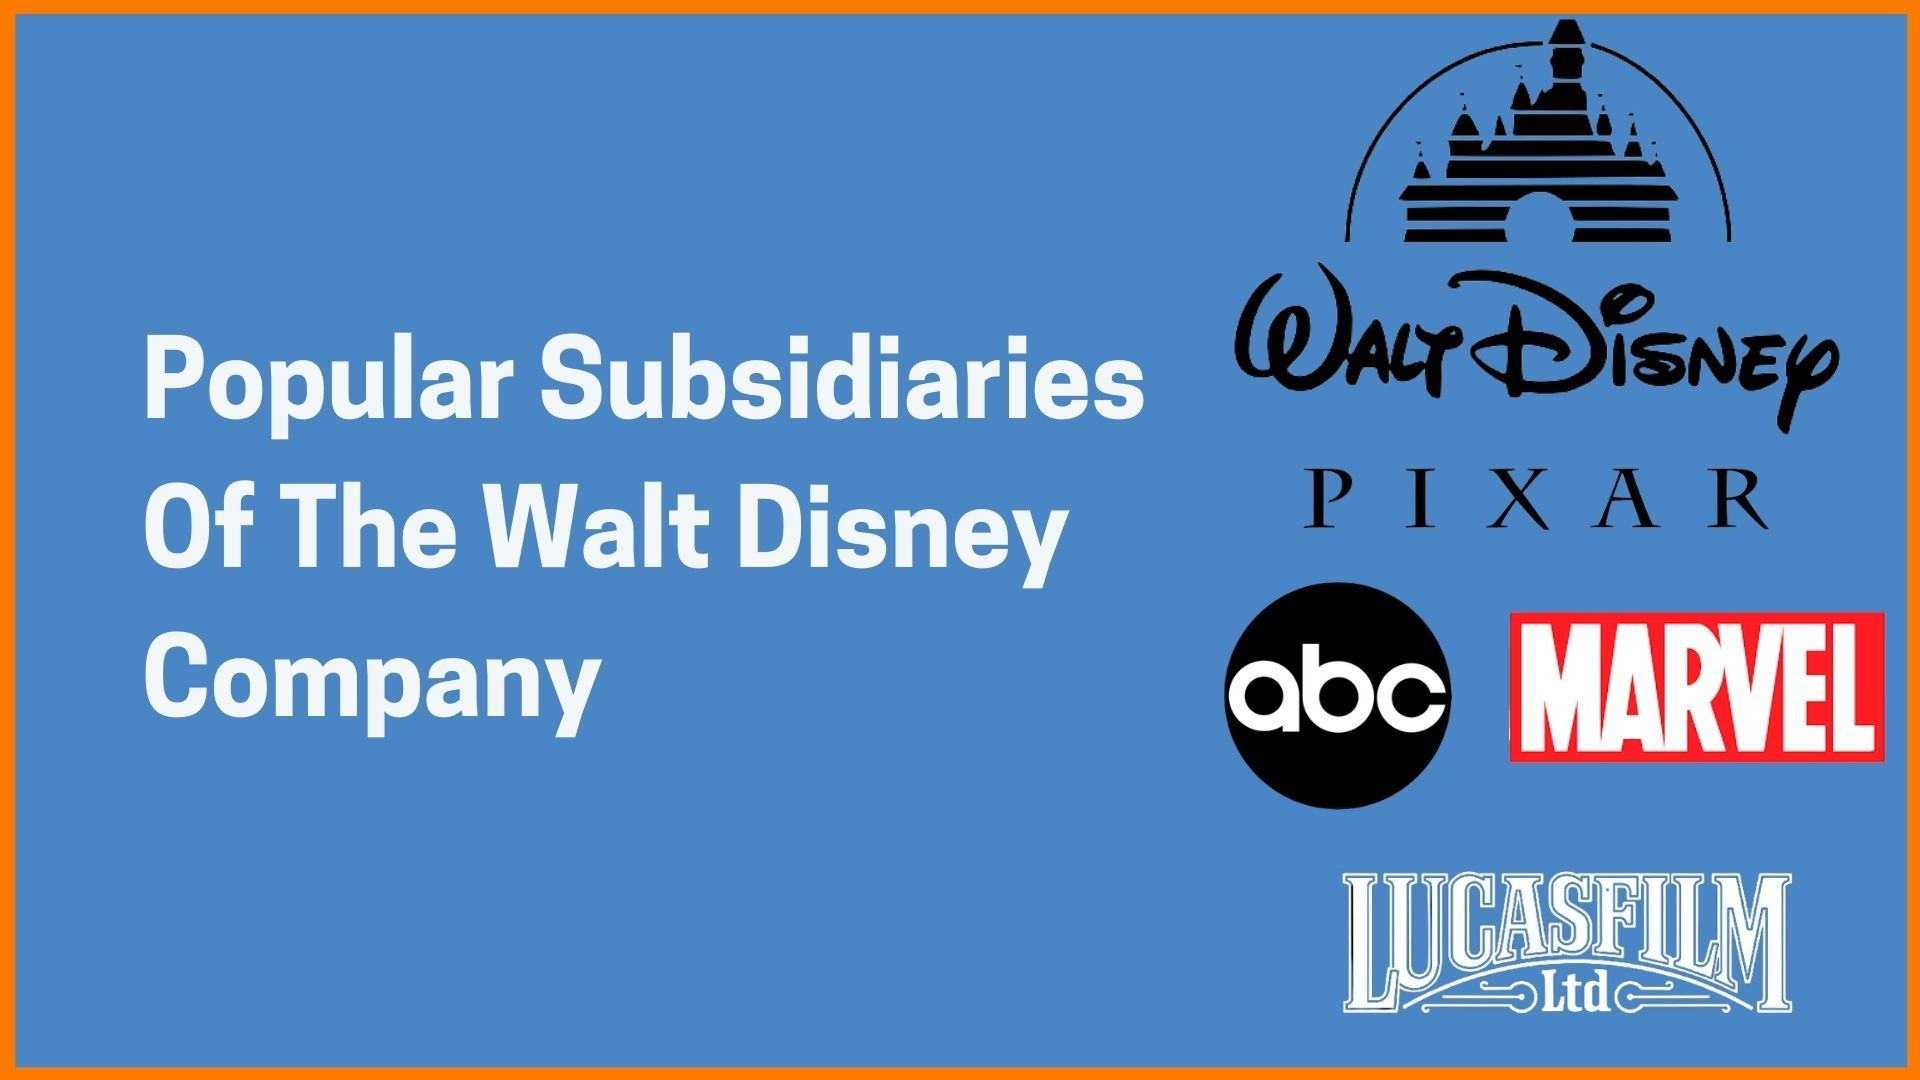 Popular Subsidiaries Of The Walt Disney Company